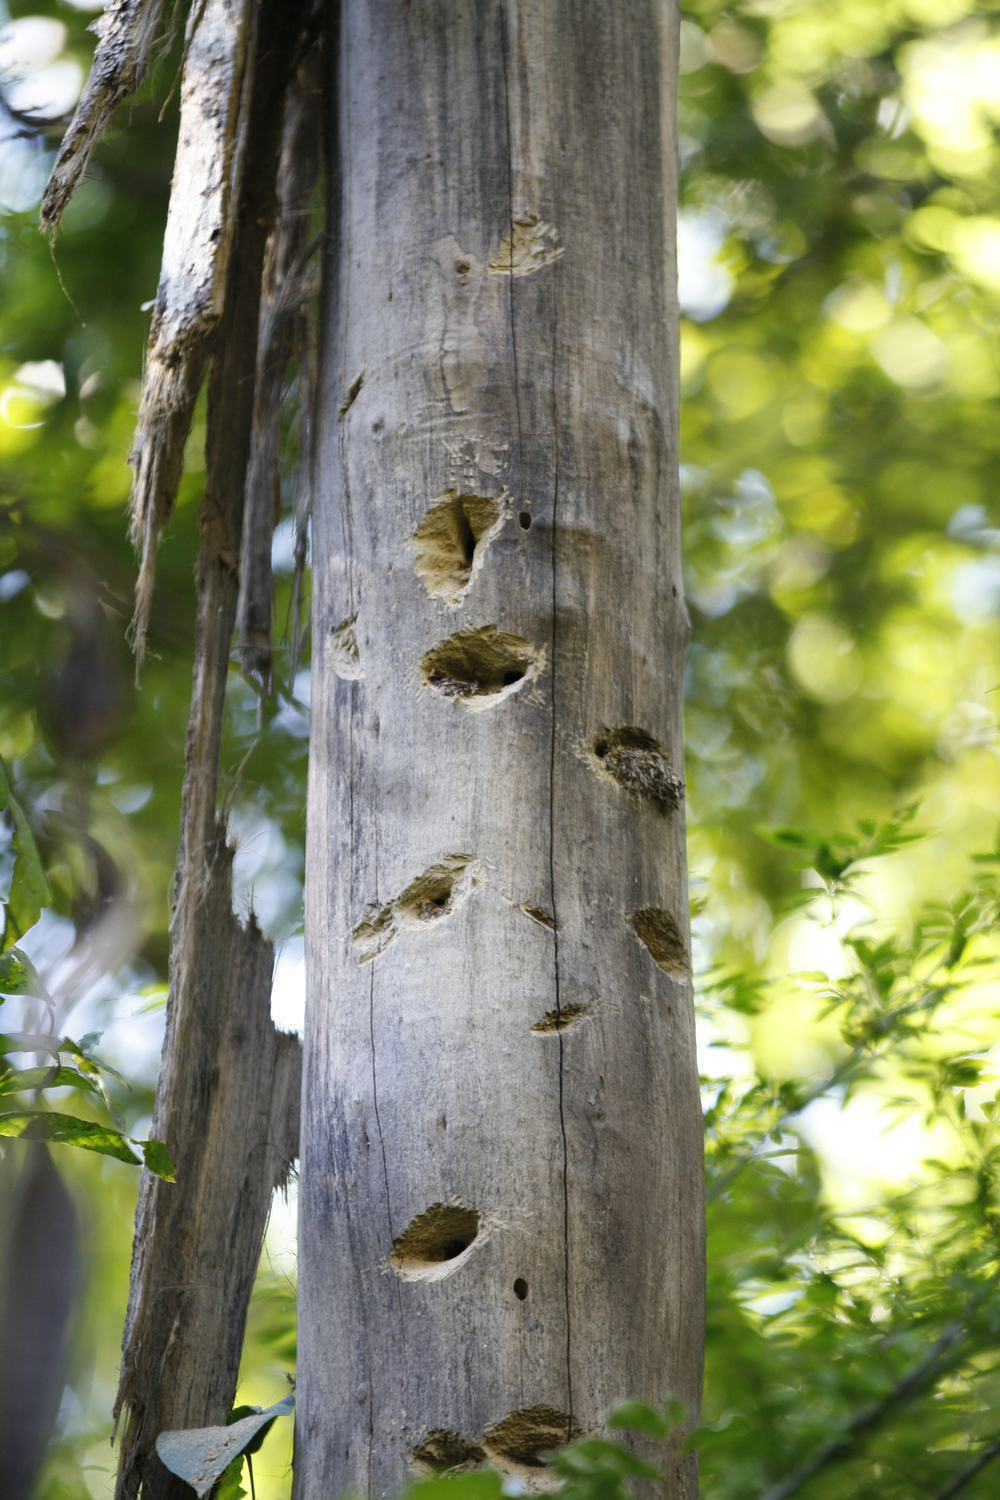 Gnaw marks on dead tree from aye-aye foraging for the larvae of wood-boring insects, Daraina, Madagascar